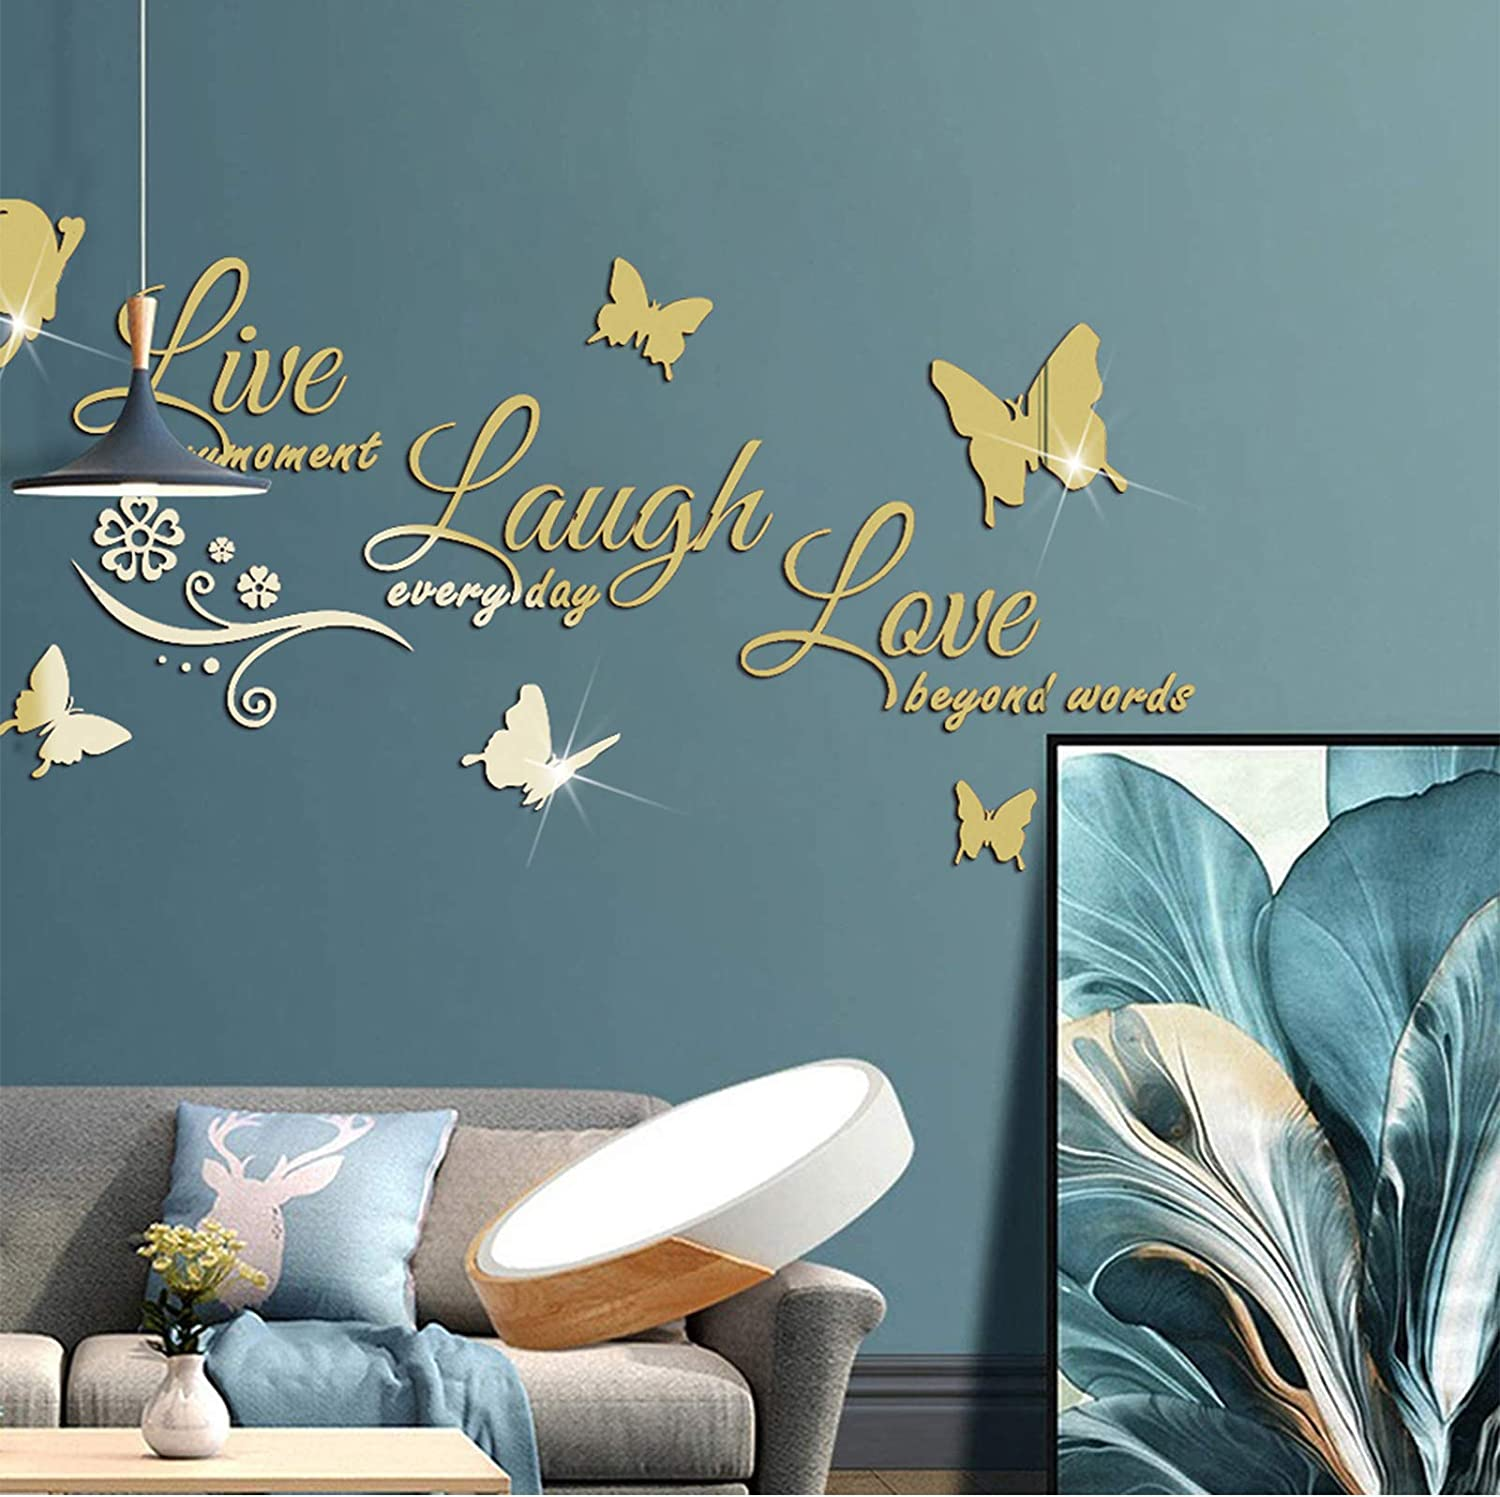 Live Every Moment, Laugh Every Day, Love Beyond Words 3D Acrylic Mirror Wall Stickers, HOLENGS 3D Butterfly Mirror Surface Motivational Letter Wall Decals, DIY Wall Decor for Home Living Room Bedroom